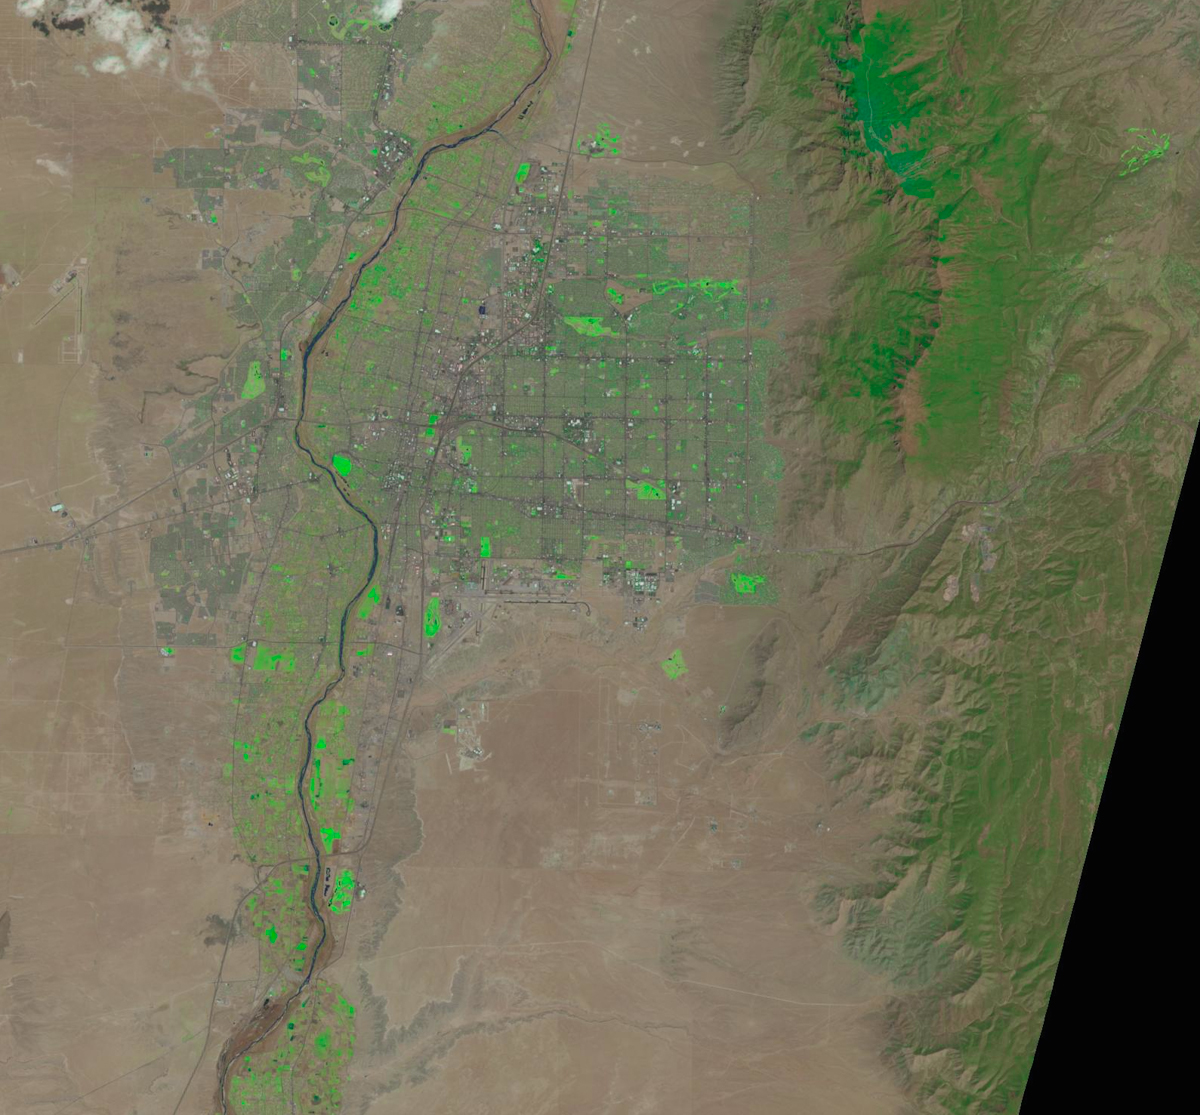 Albuquerque as seen from space, April 13, 2014, via NASA Landsat. Colors enhanced.